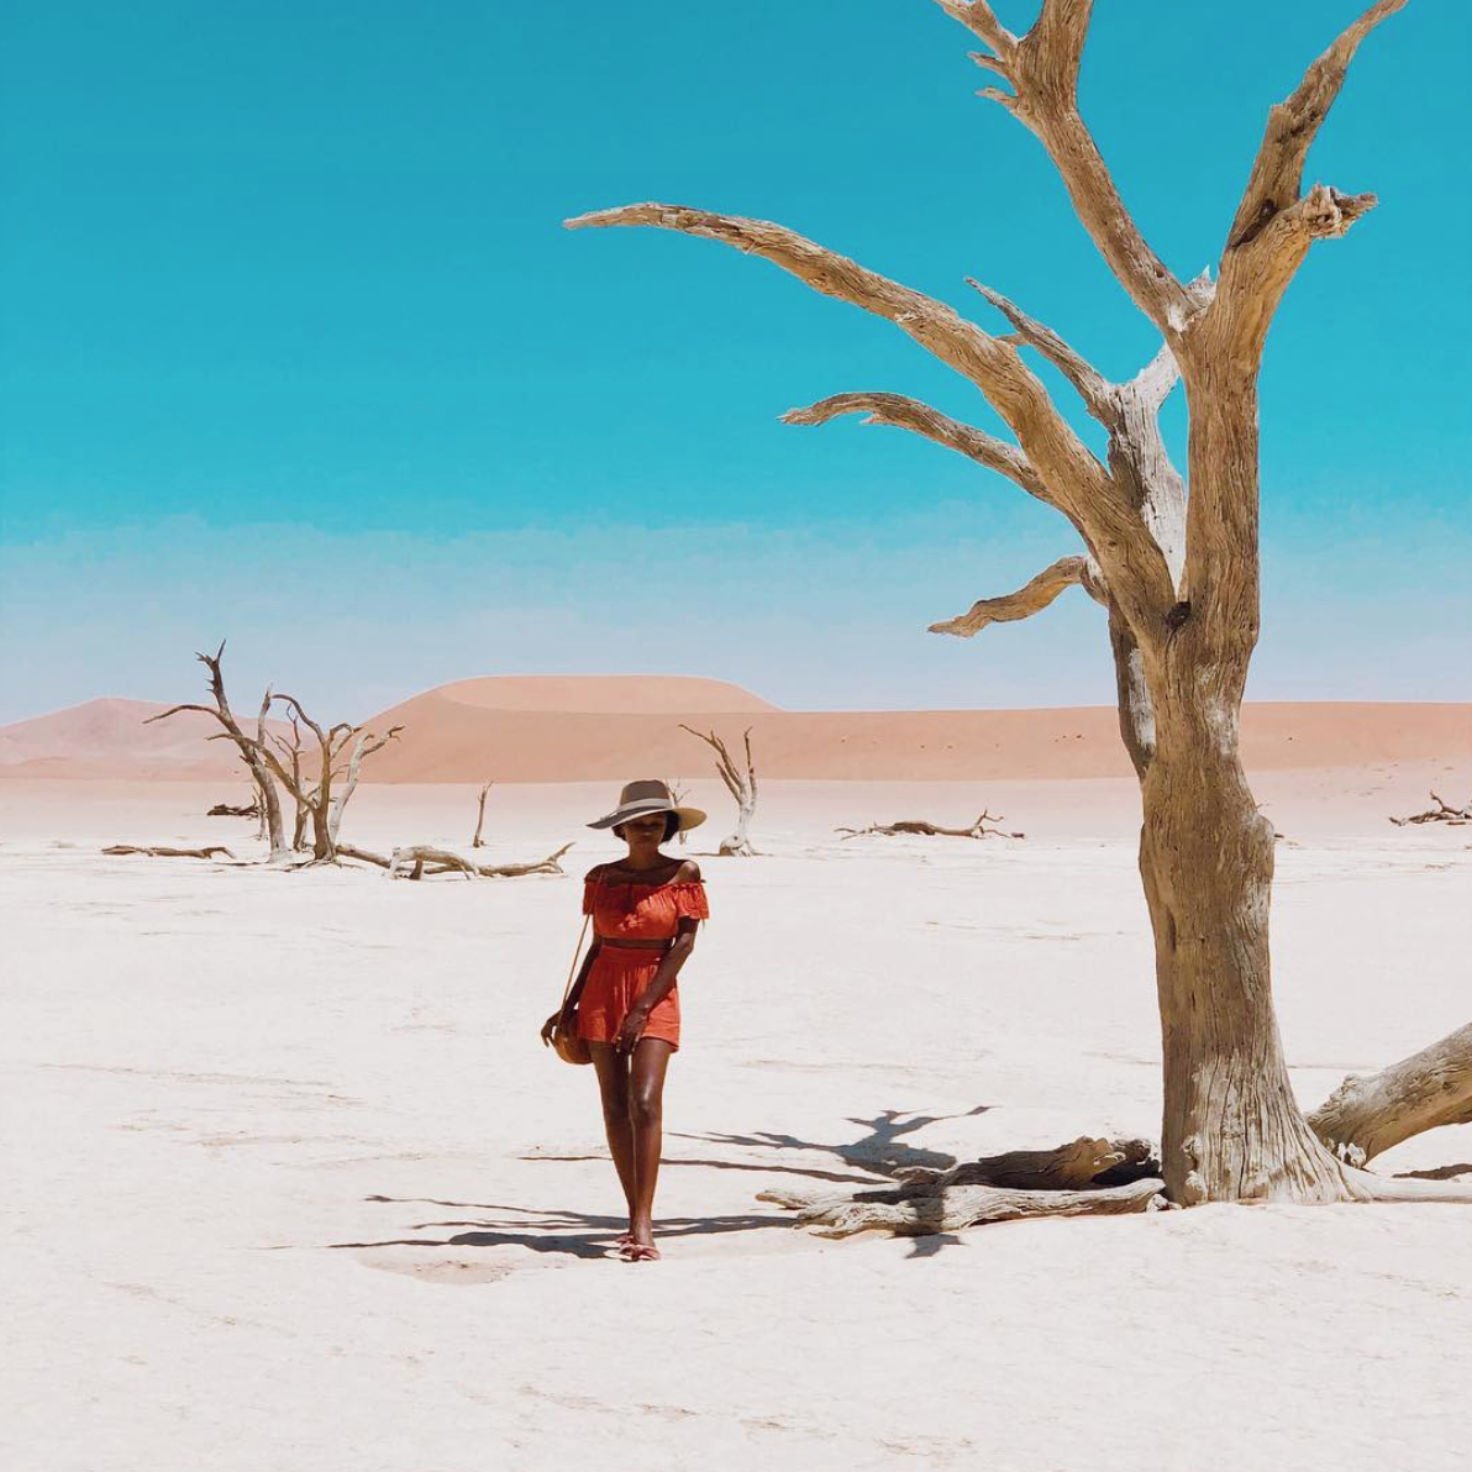 Black Travel Vibes: Lose Yourself in Namibia's Gorgeous White Sand Deserts